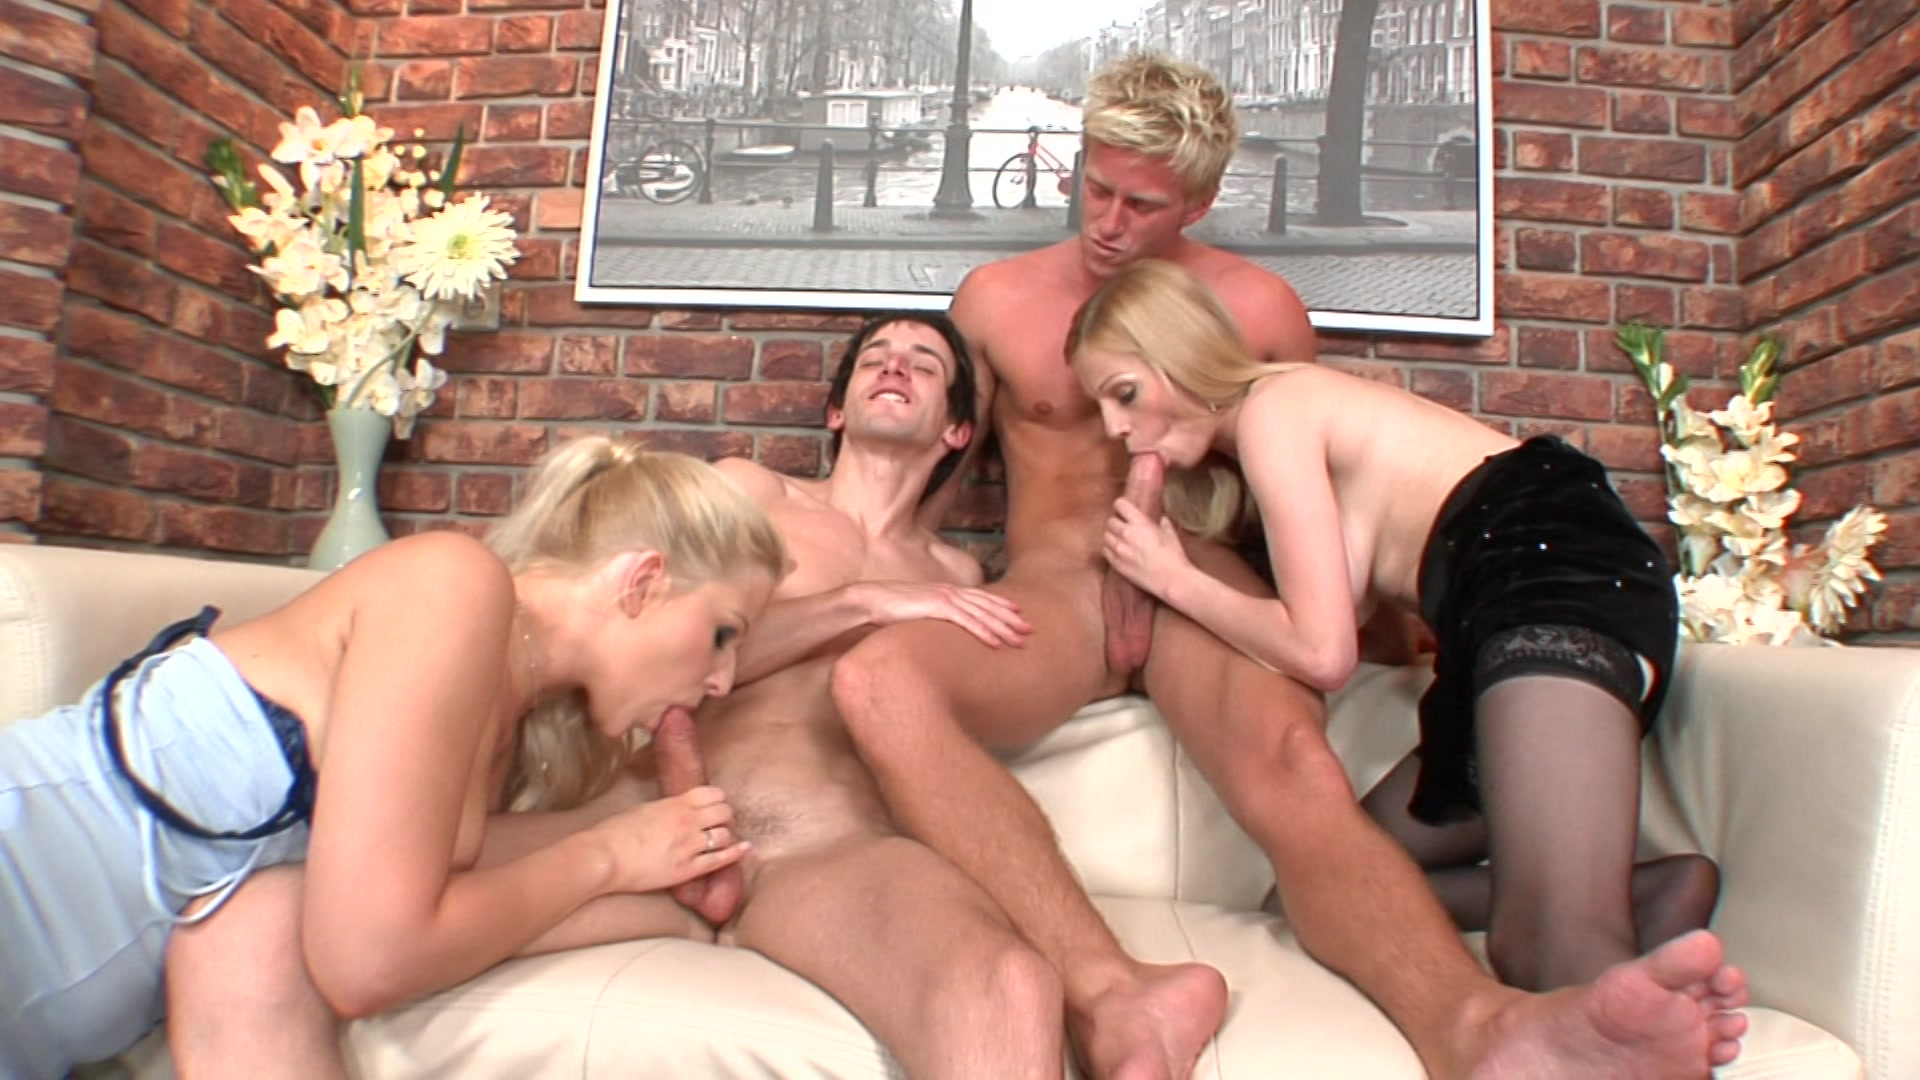 Orgy Between Shemale Woman And Man